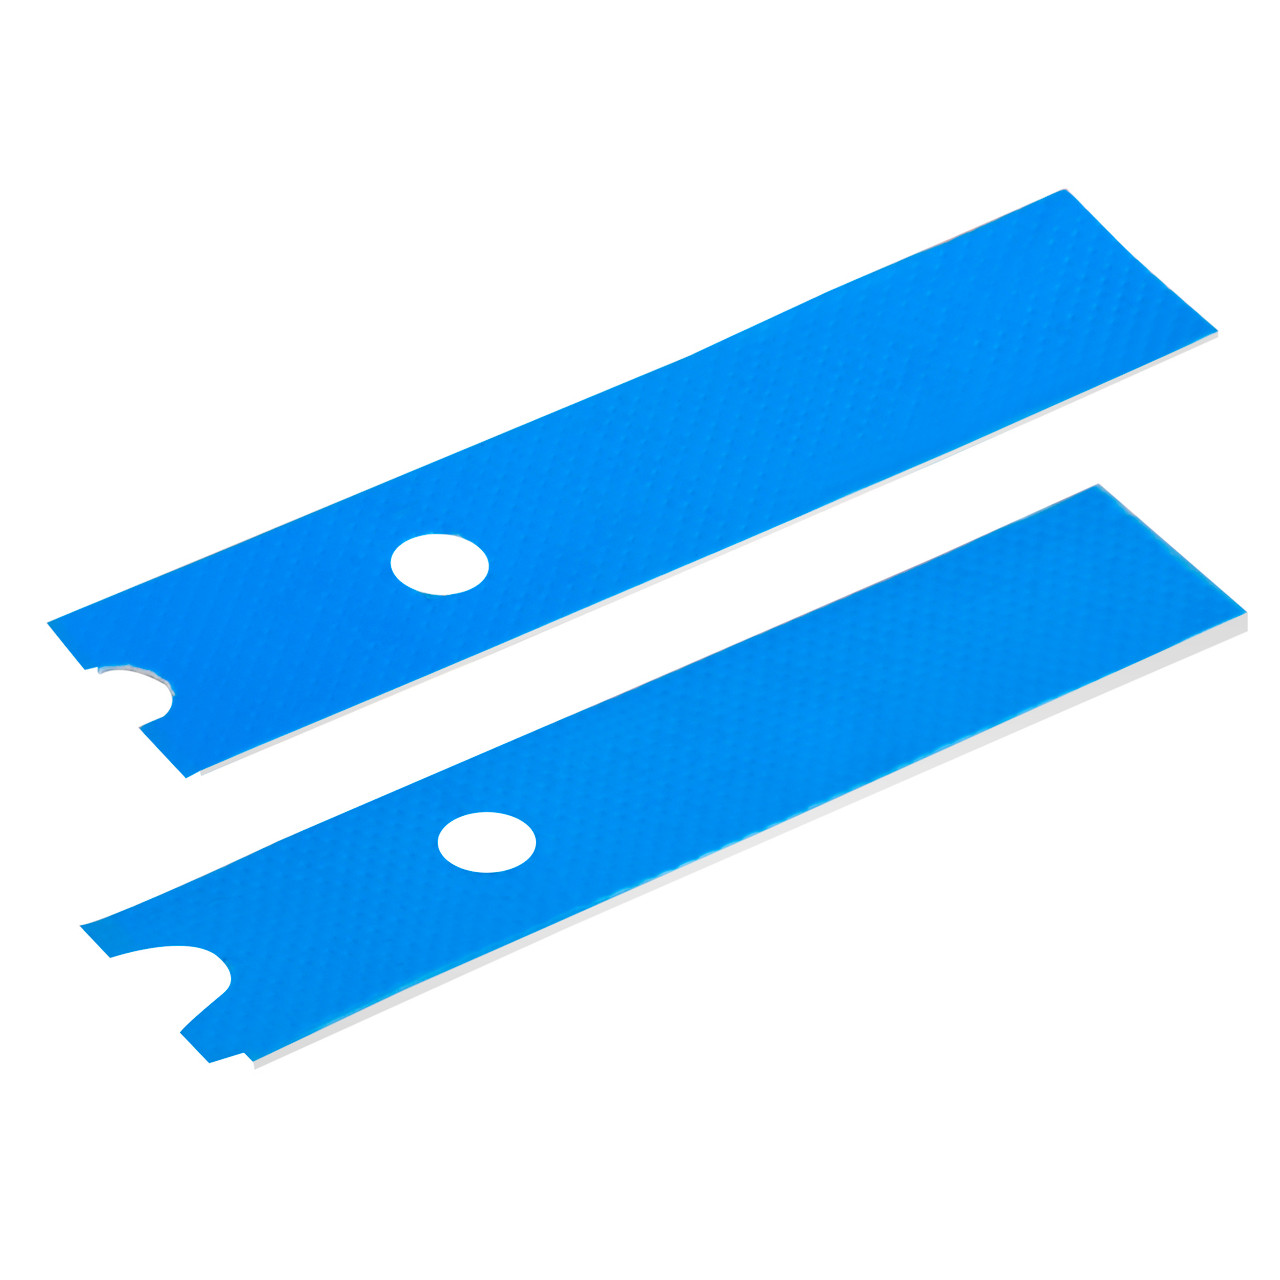 Silverstone thermal pad (heatsink) for M.2 NVME and SATA SSD